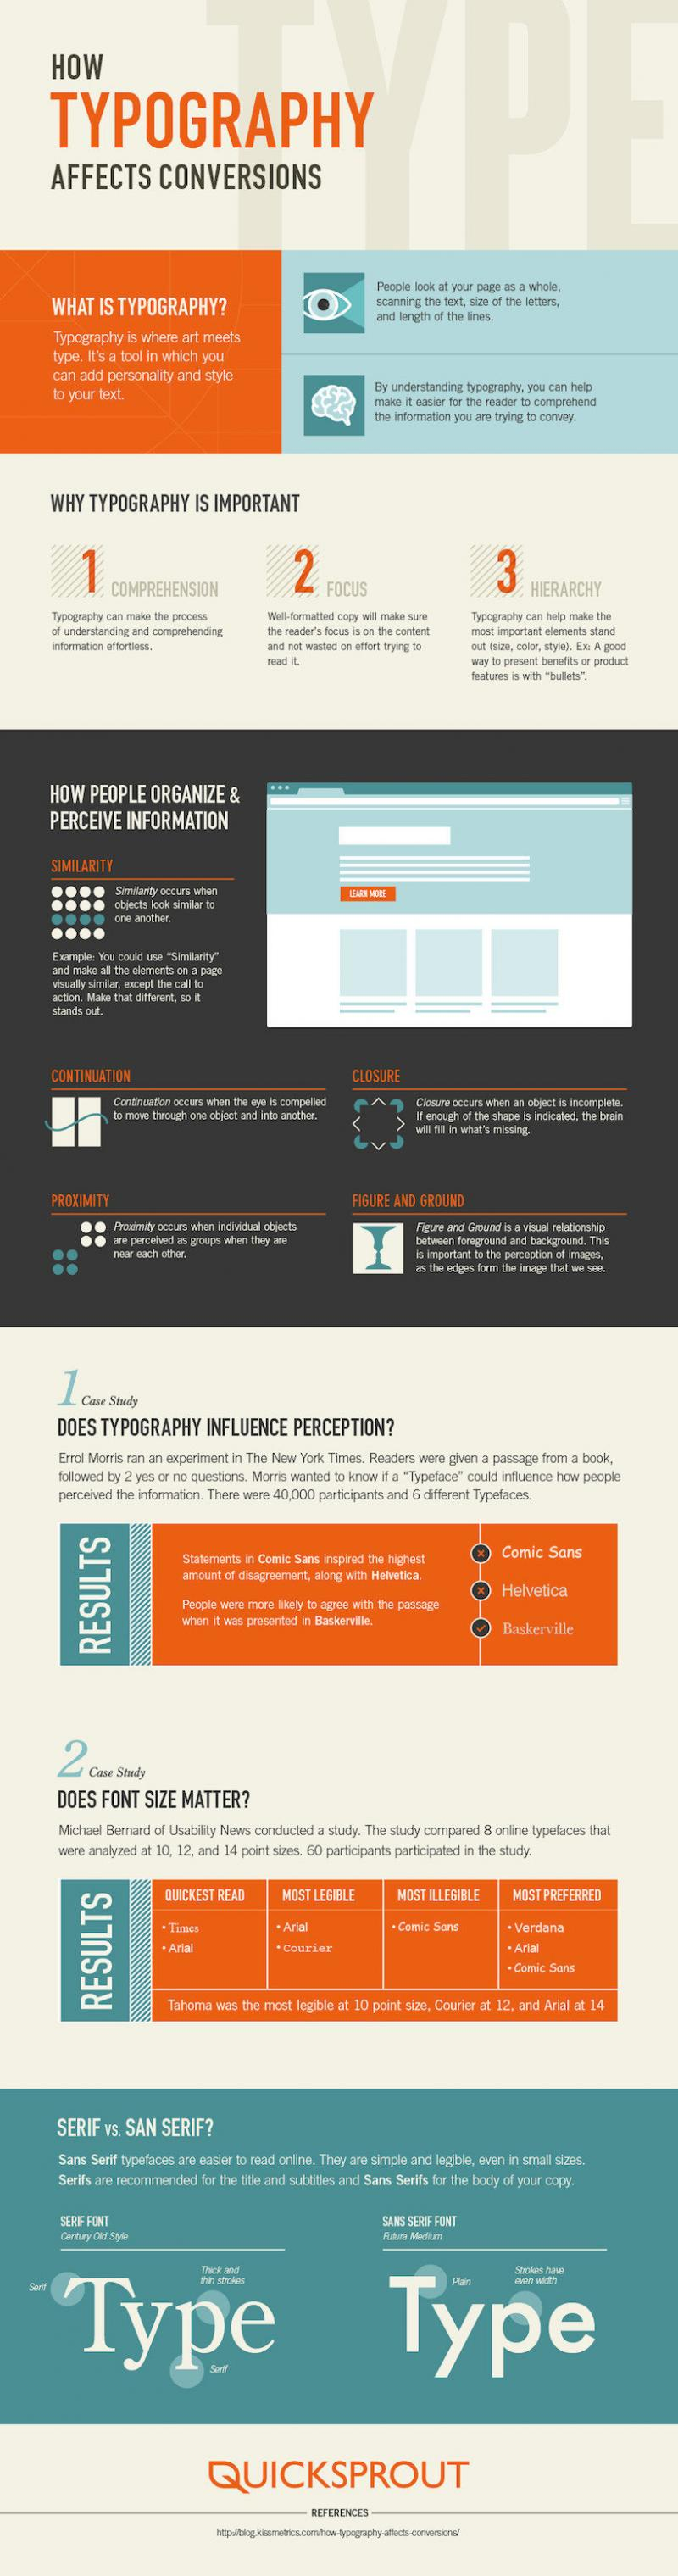 How Does Typography Affect Conversions? #infographic